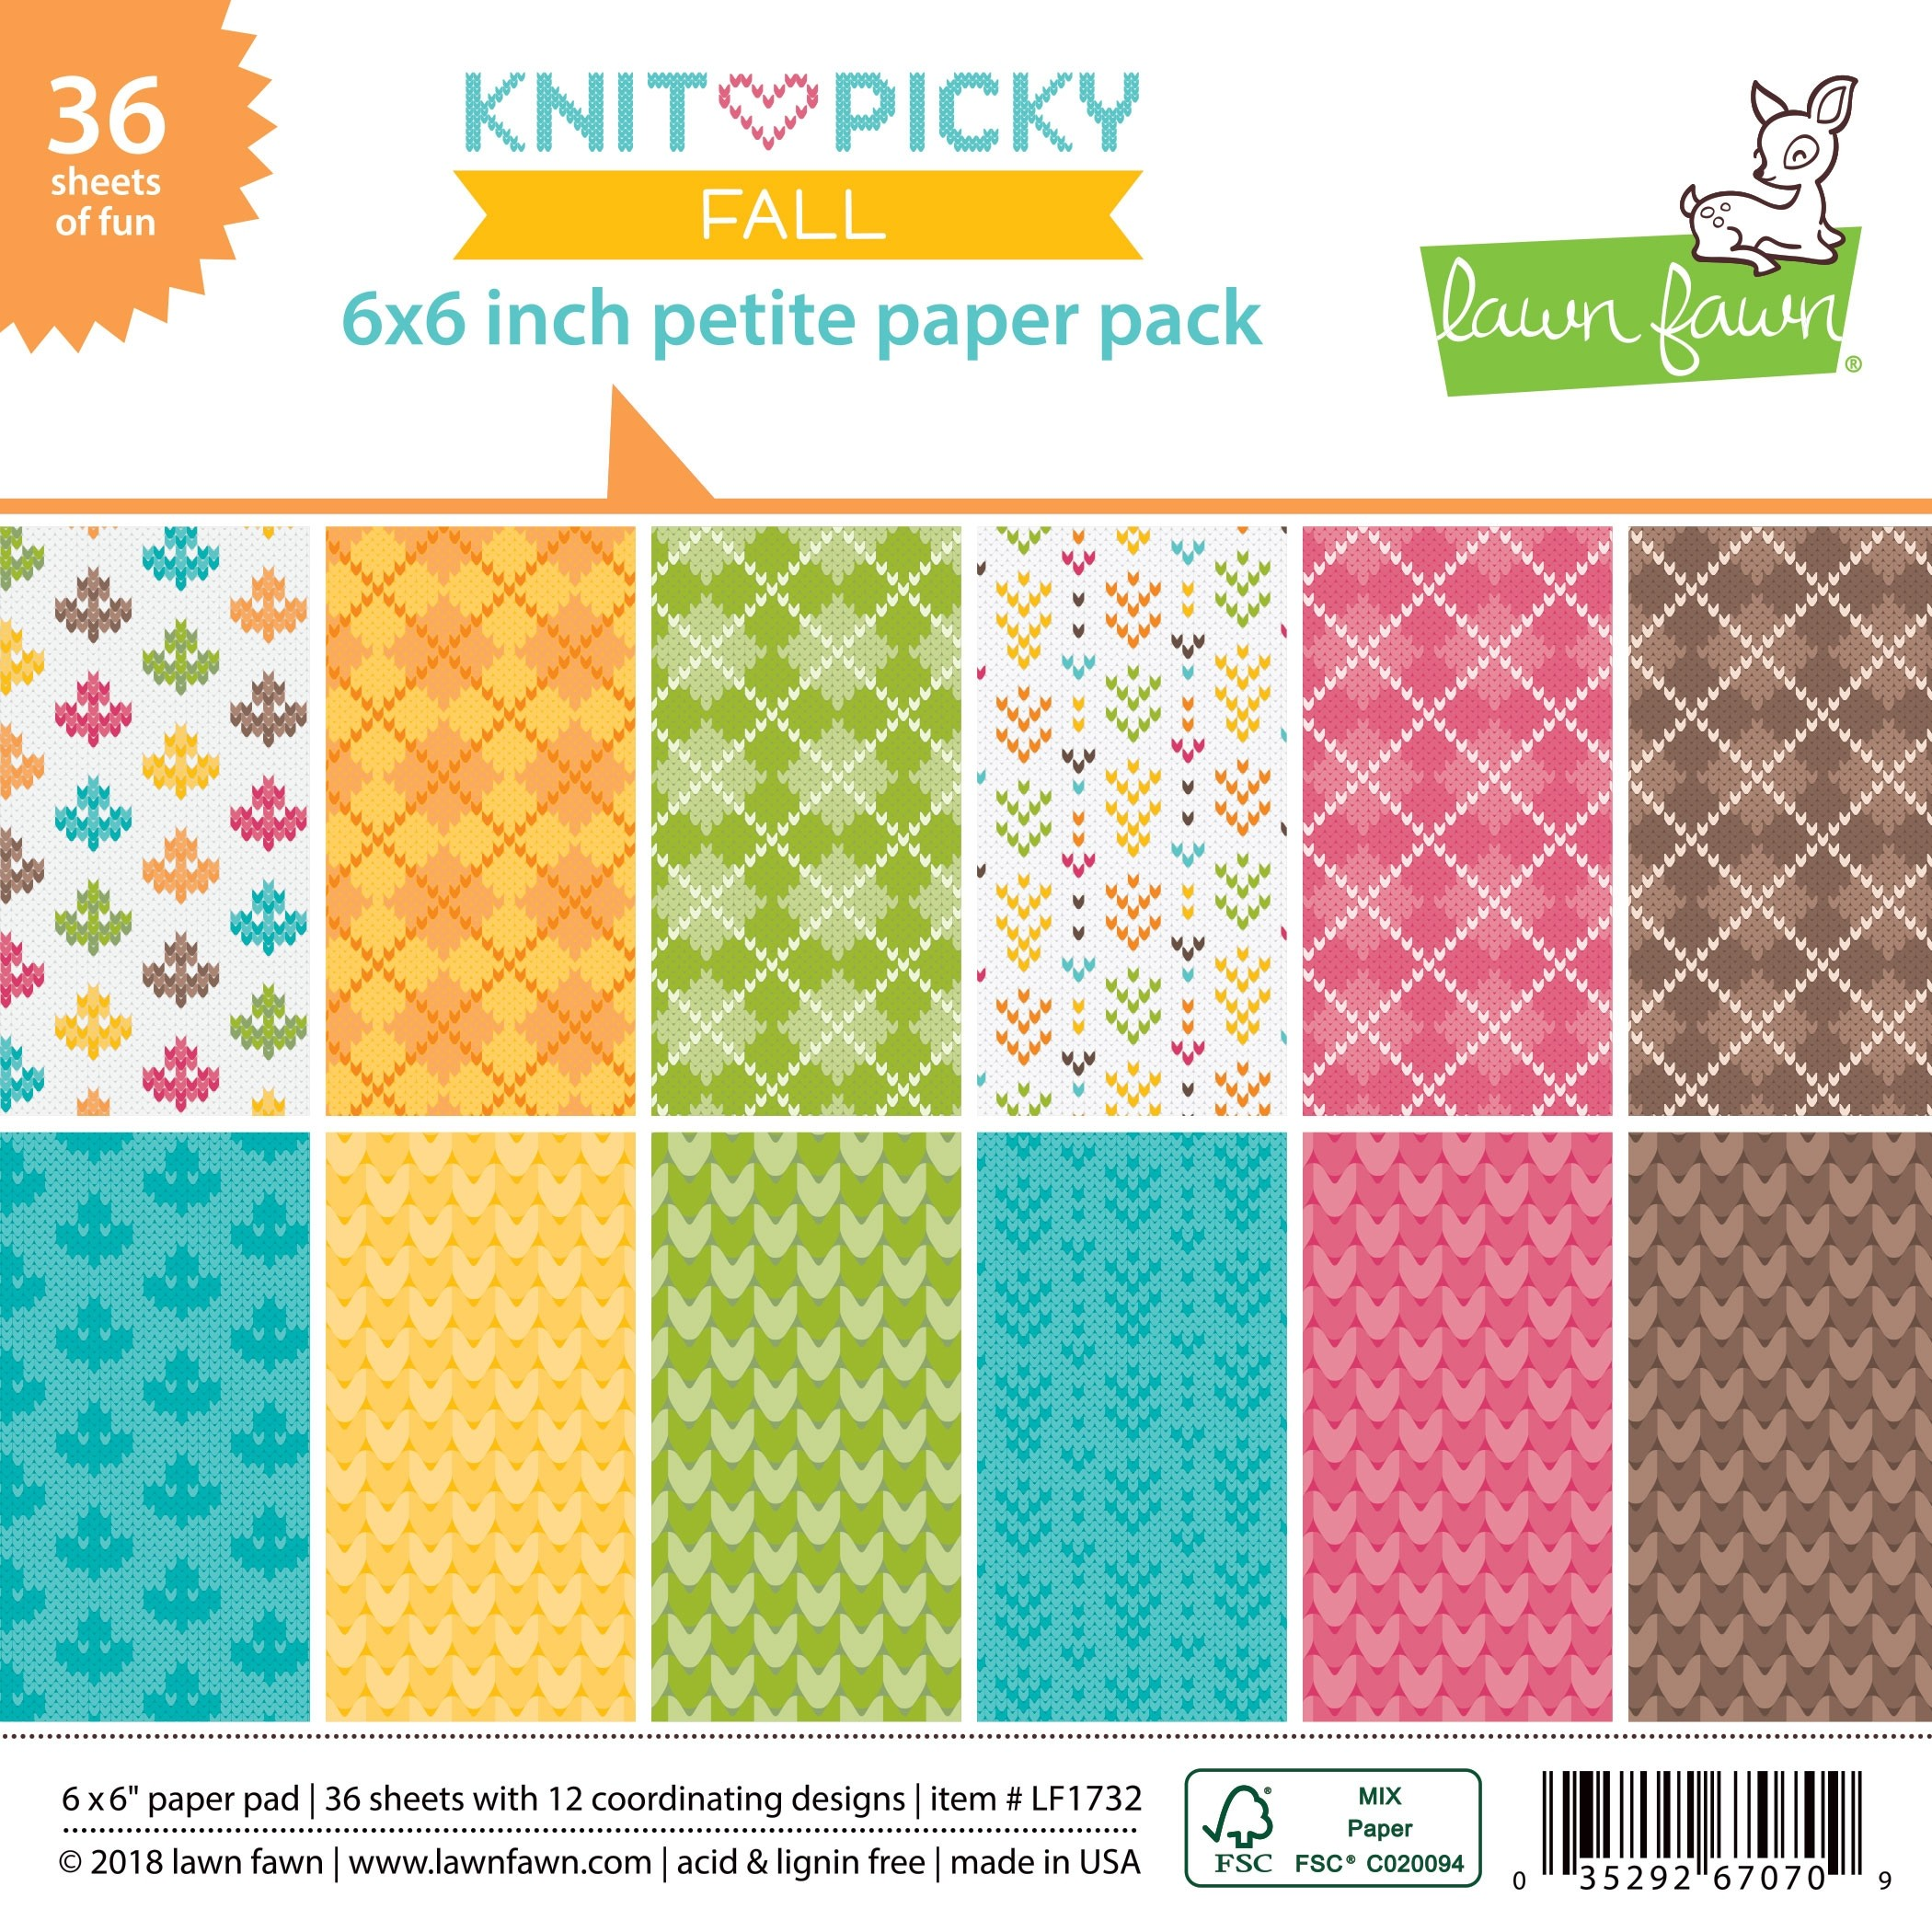 Lawn Fawn knit picky fall petite paper pack